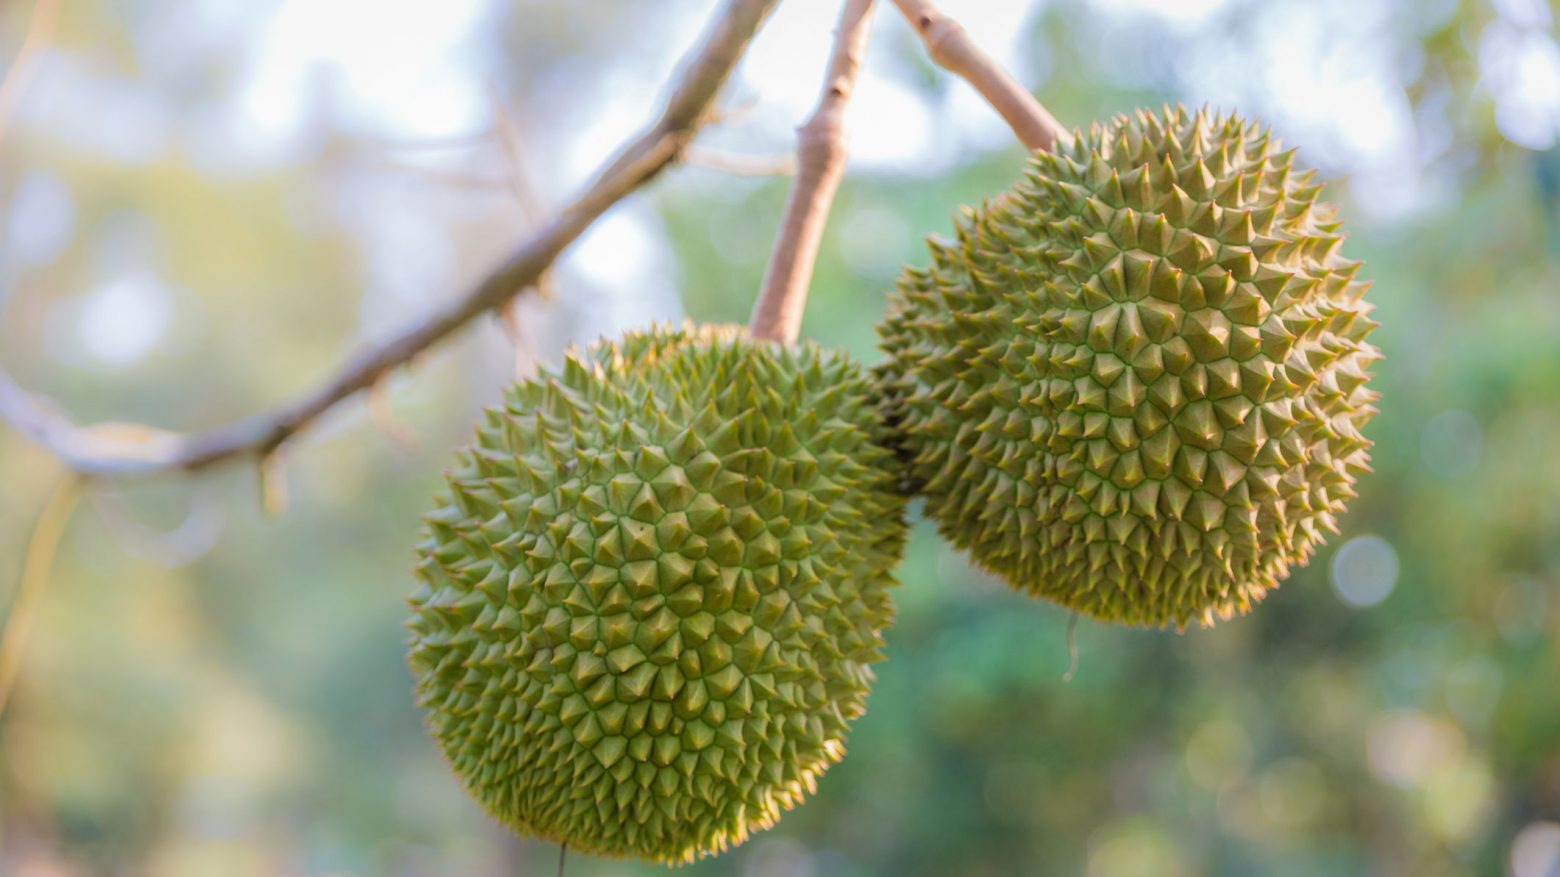 Want to know about the musang king durian fruit